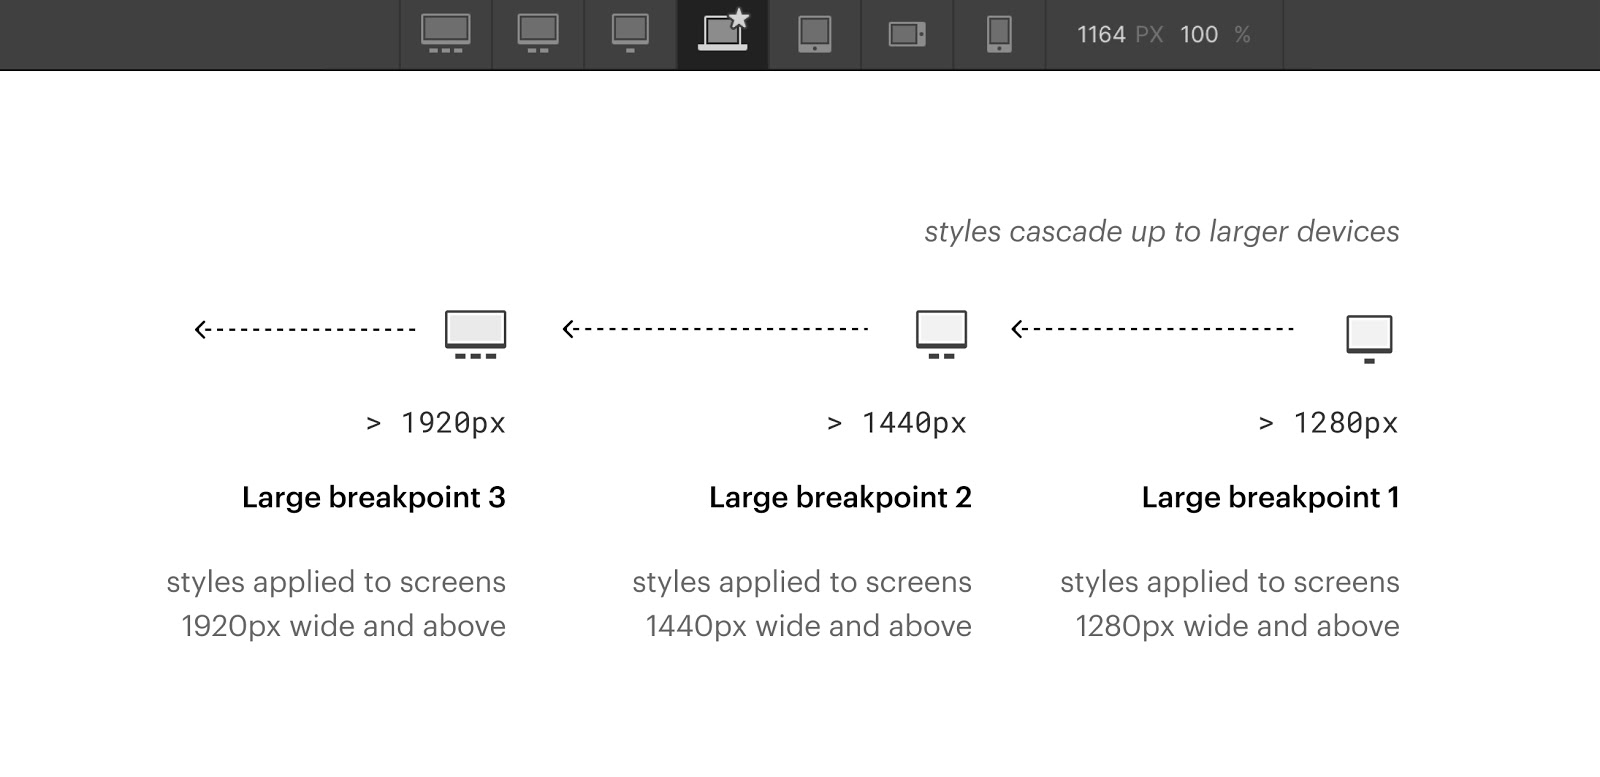 Customize your design for larger screens with new breakpoints at 1280px, 1440px, and 1920px.